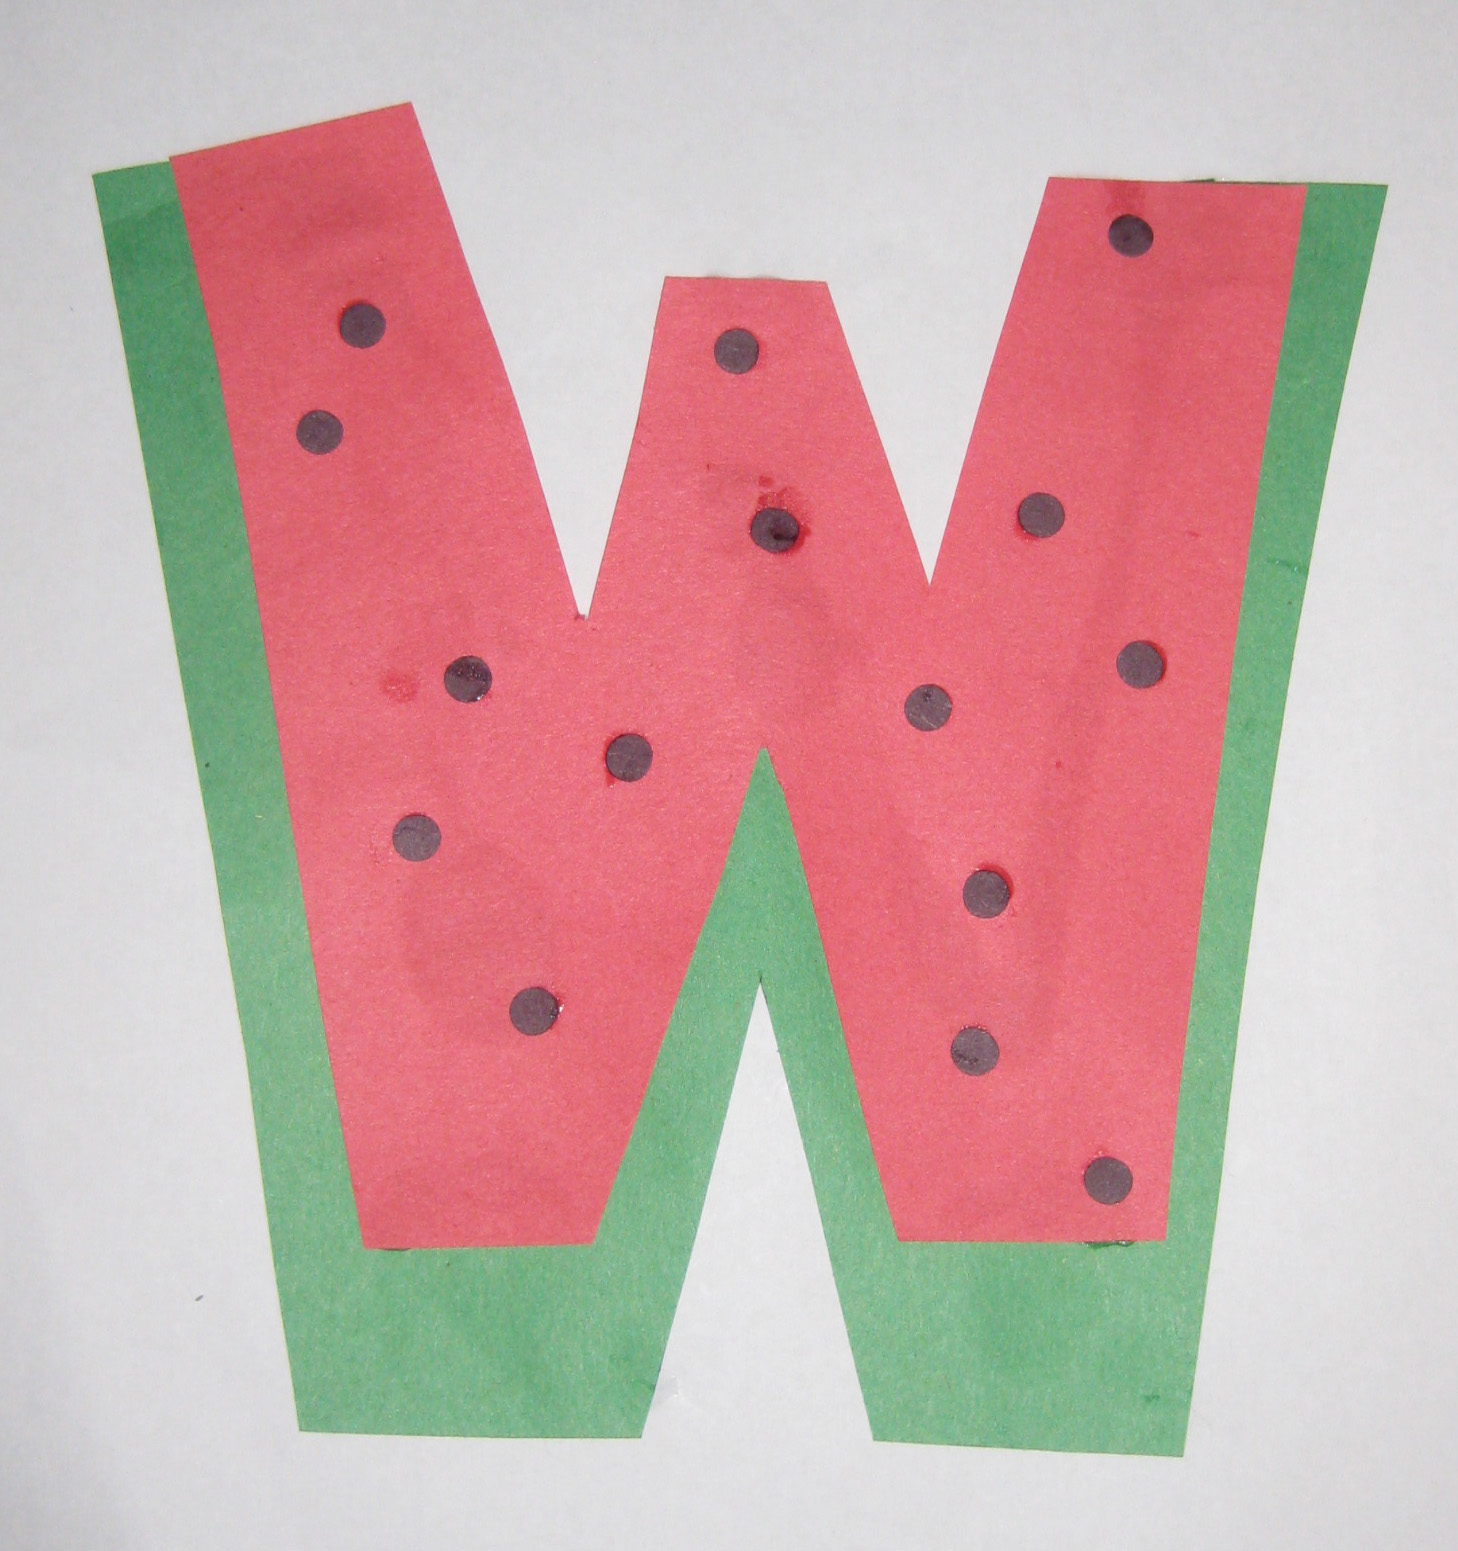 Letter W Art Activities For Preschoolers | Poemdoc.or